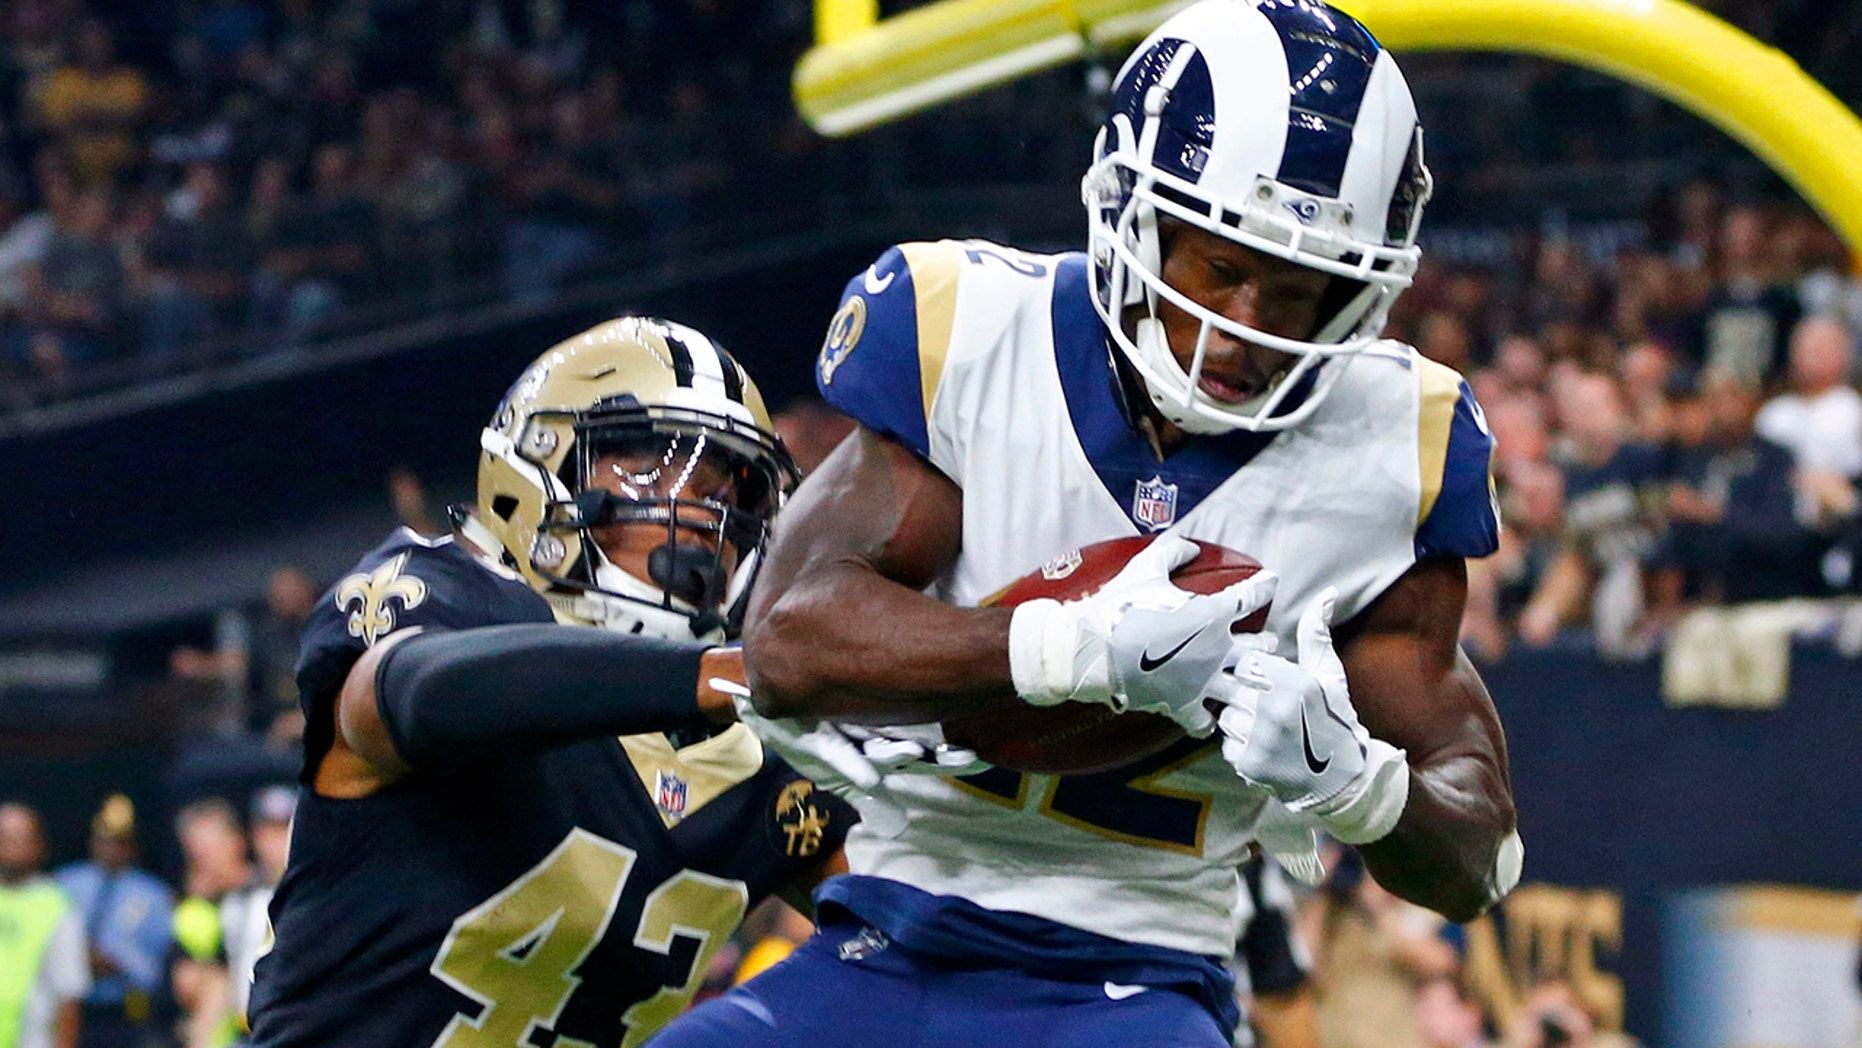 Brandin Cooks gifted Super Bowl tickets to the Rams' custodian.